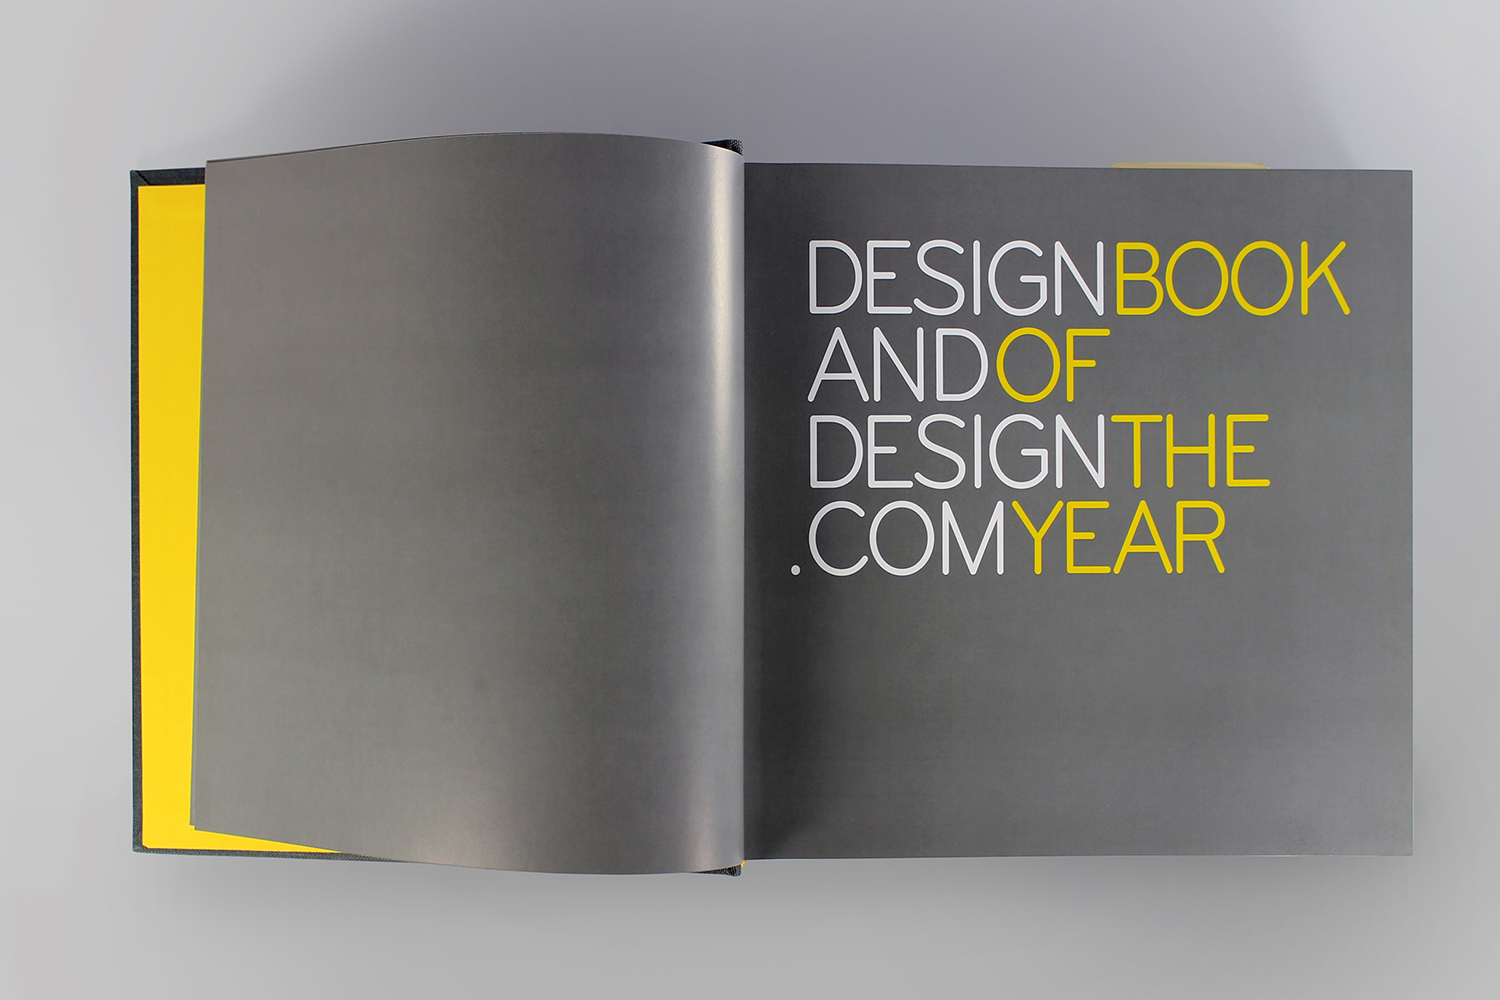 Design And Design Book Of The Year _ 5.JPG